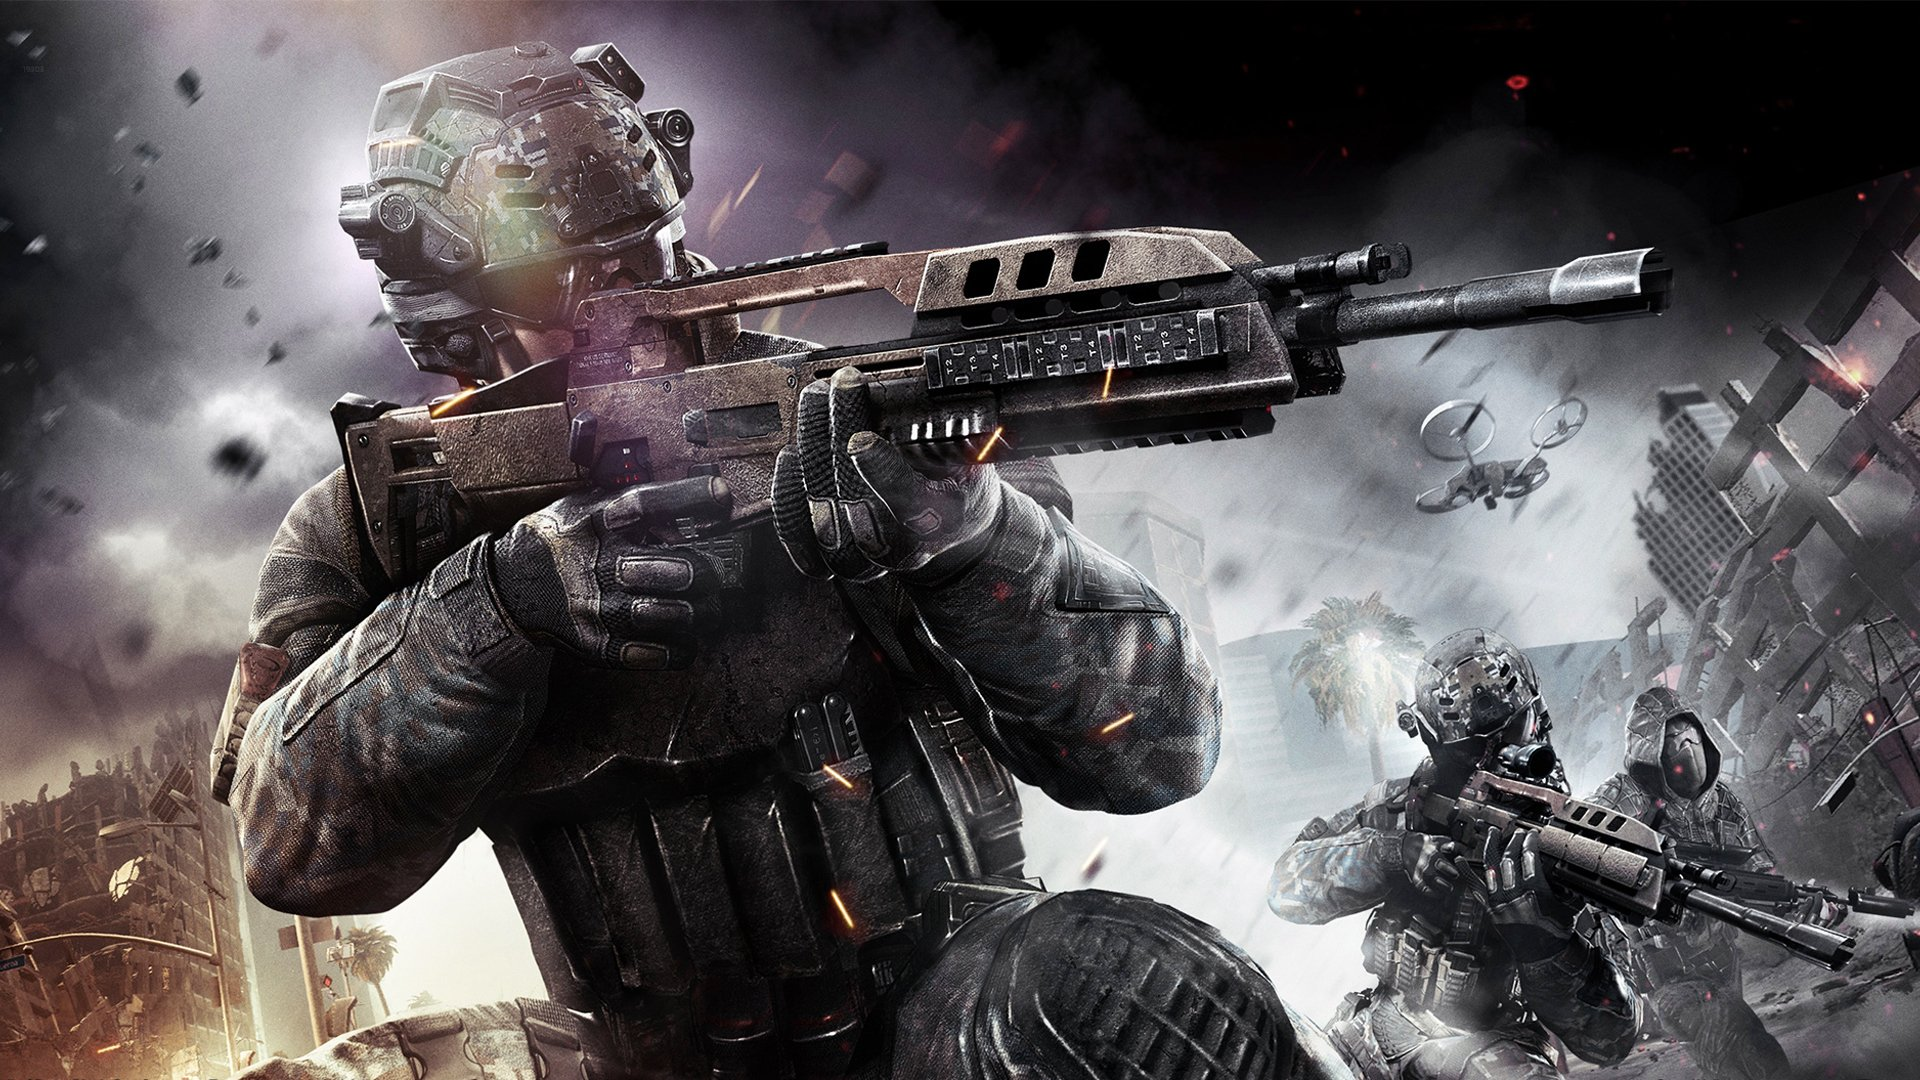 Call Of Duty Hd Wallpaper Background Image 1920x1080